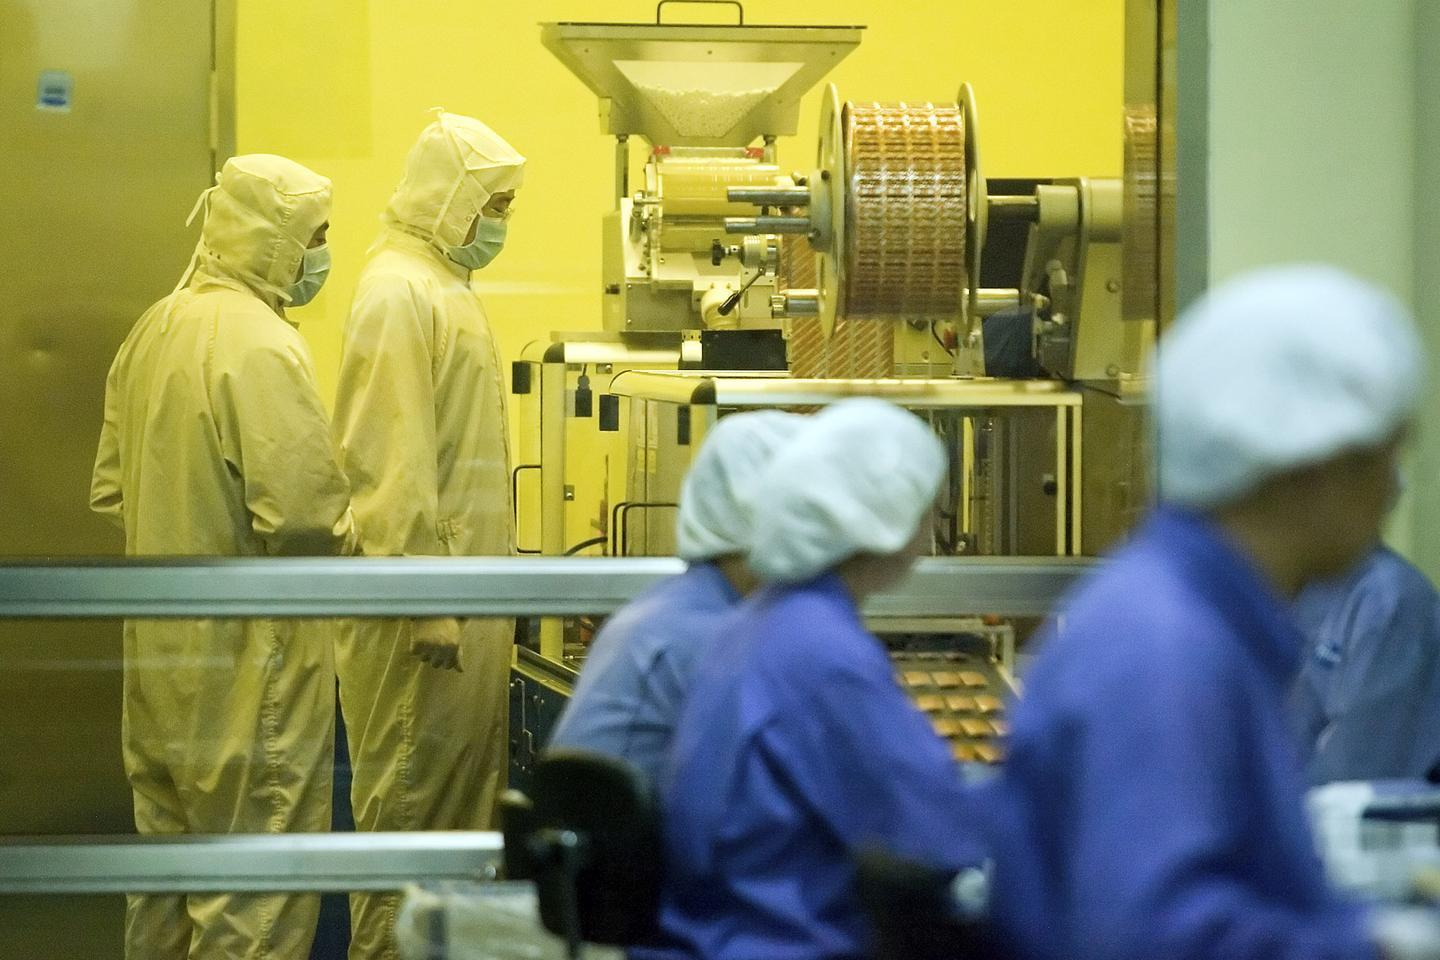 Pfizer to build $500M facility in Sanford, create hundreds of jobs